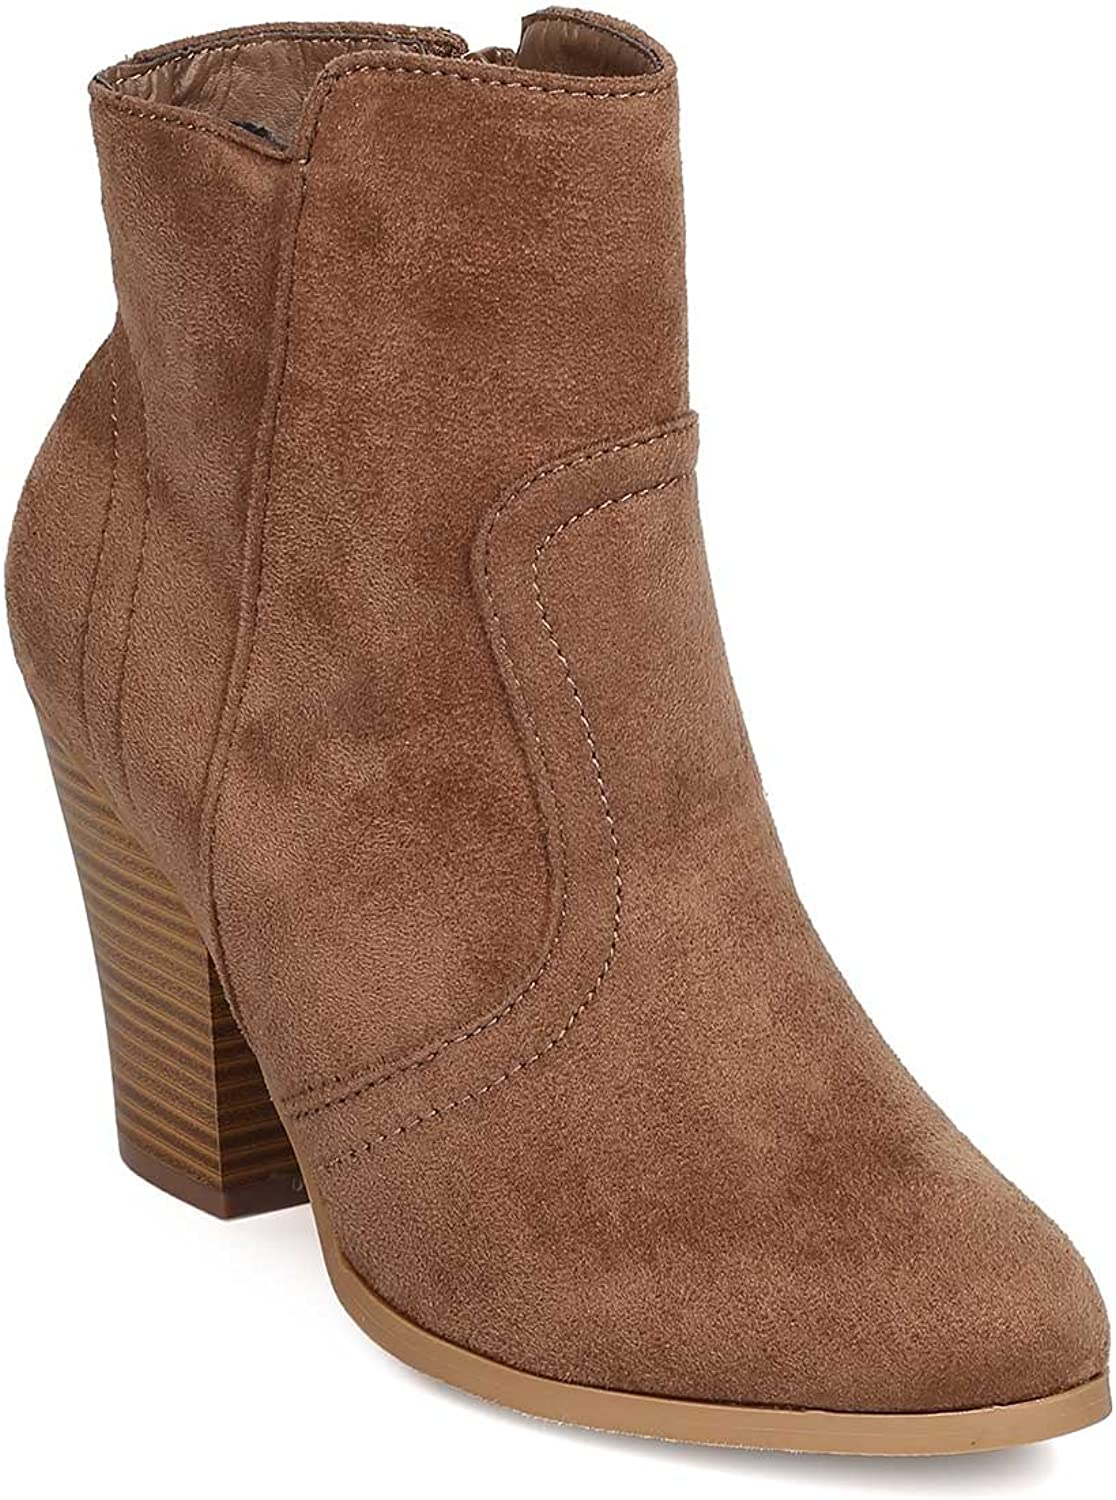 Wild Diva Women Faux Suede Chunky Heel Riding Bootie FD99 - Taupe